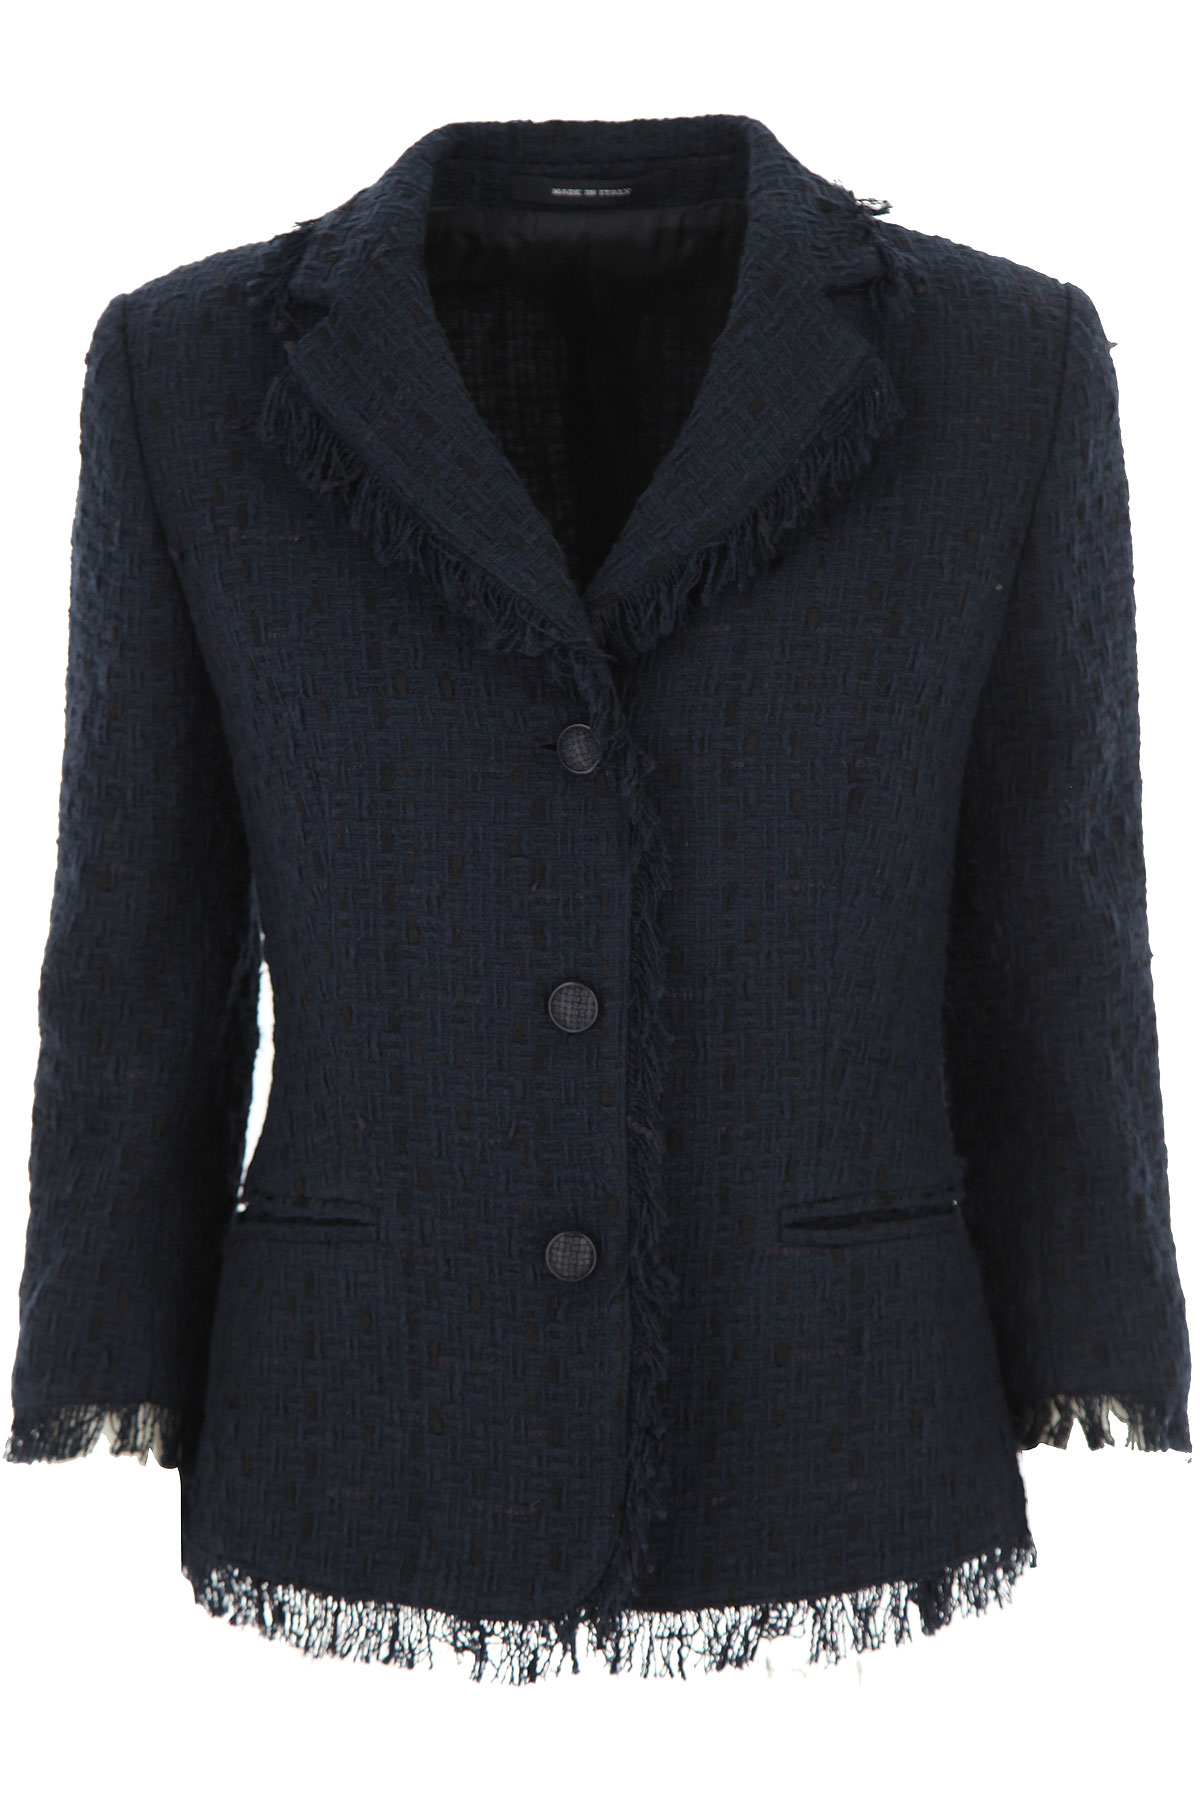 Tagliatore Blazer for Women On Sale, Navy Blue, cupro, 2019, 10 6